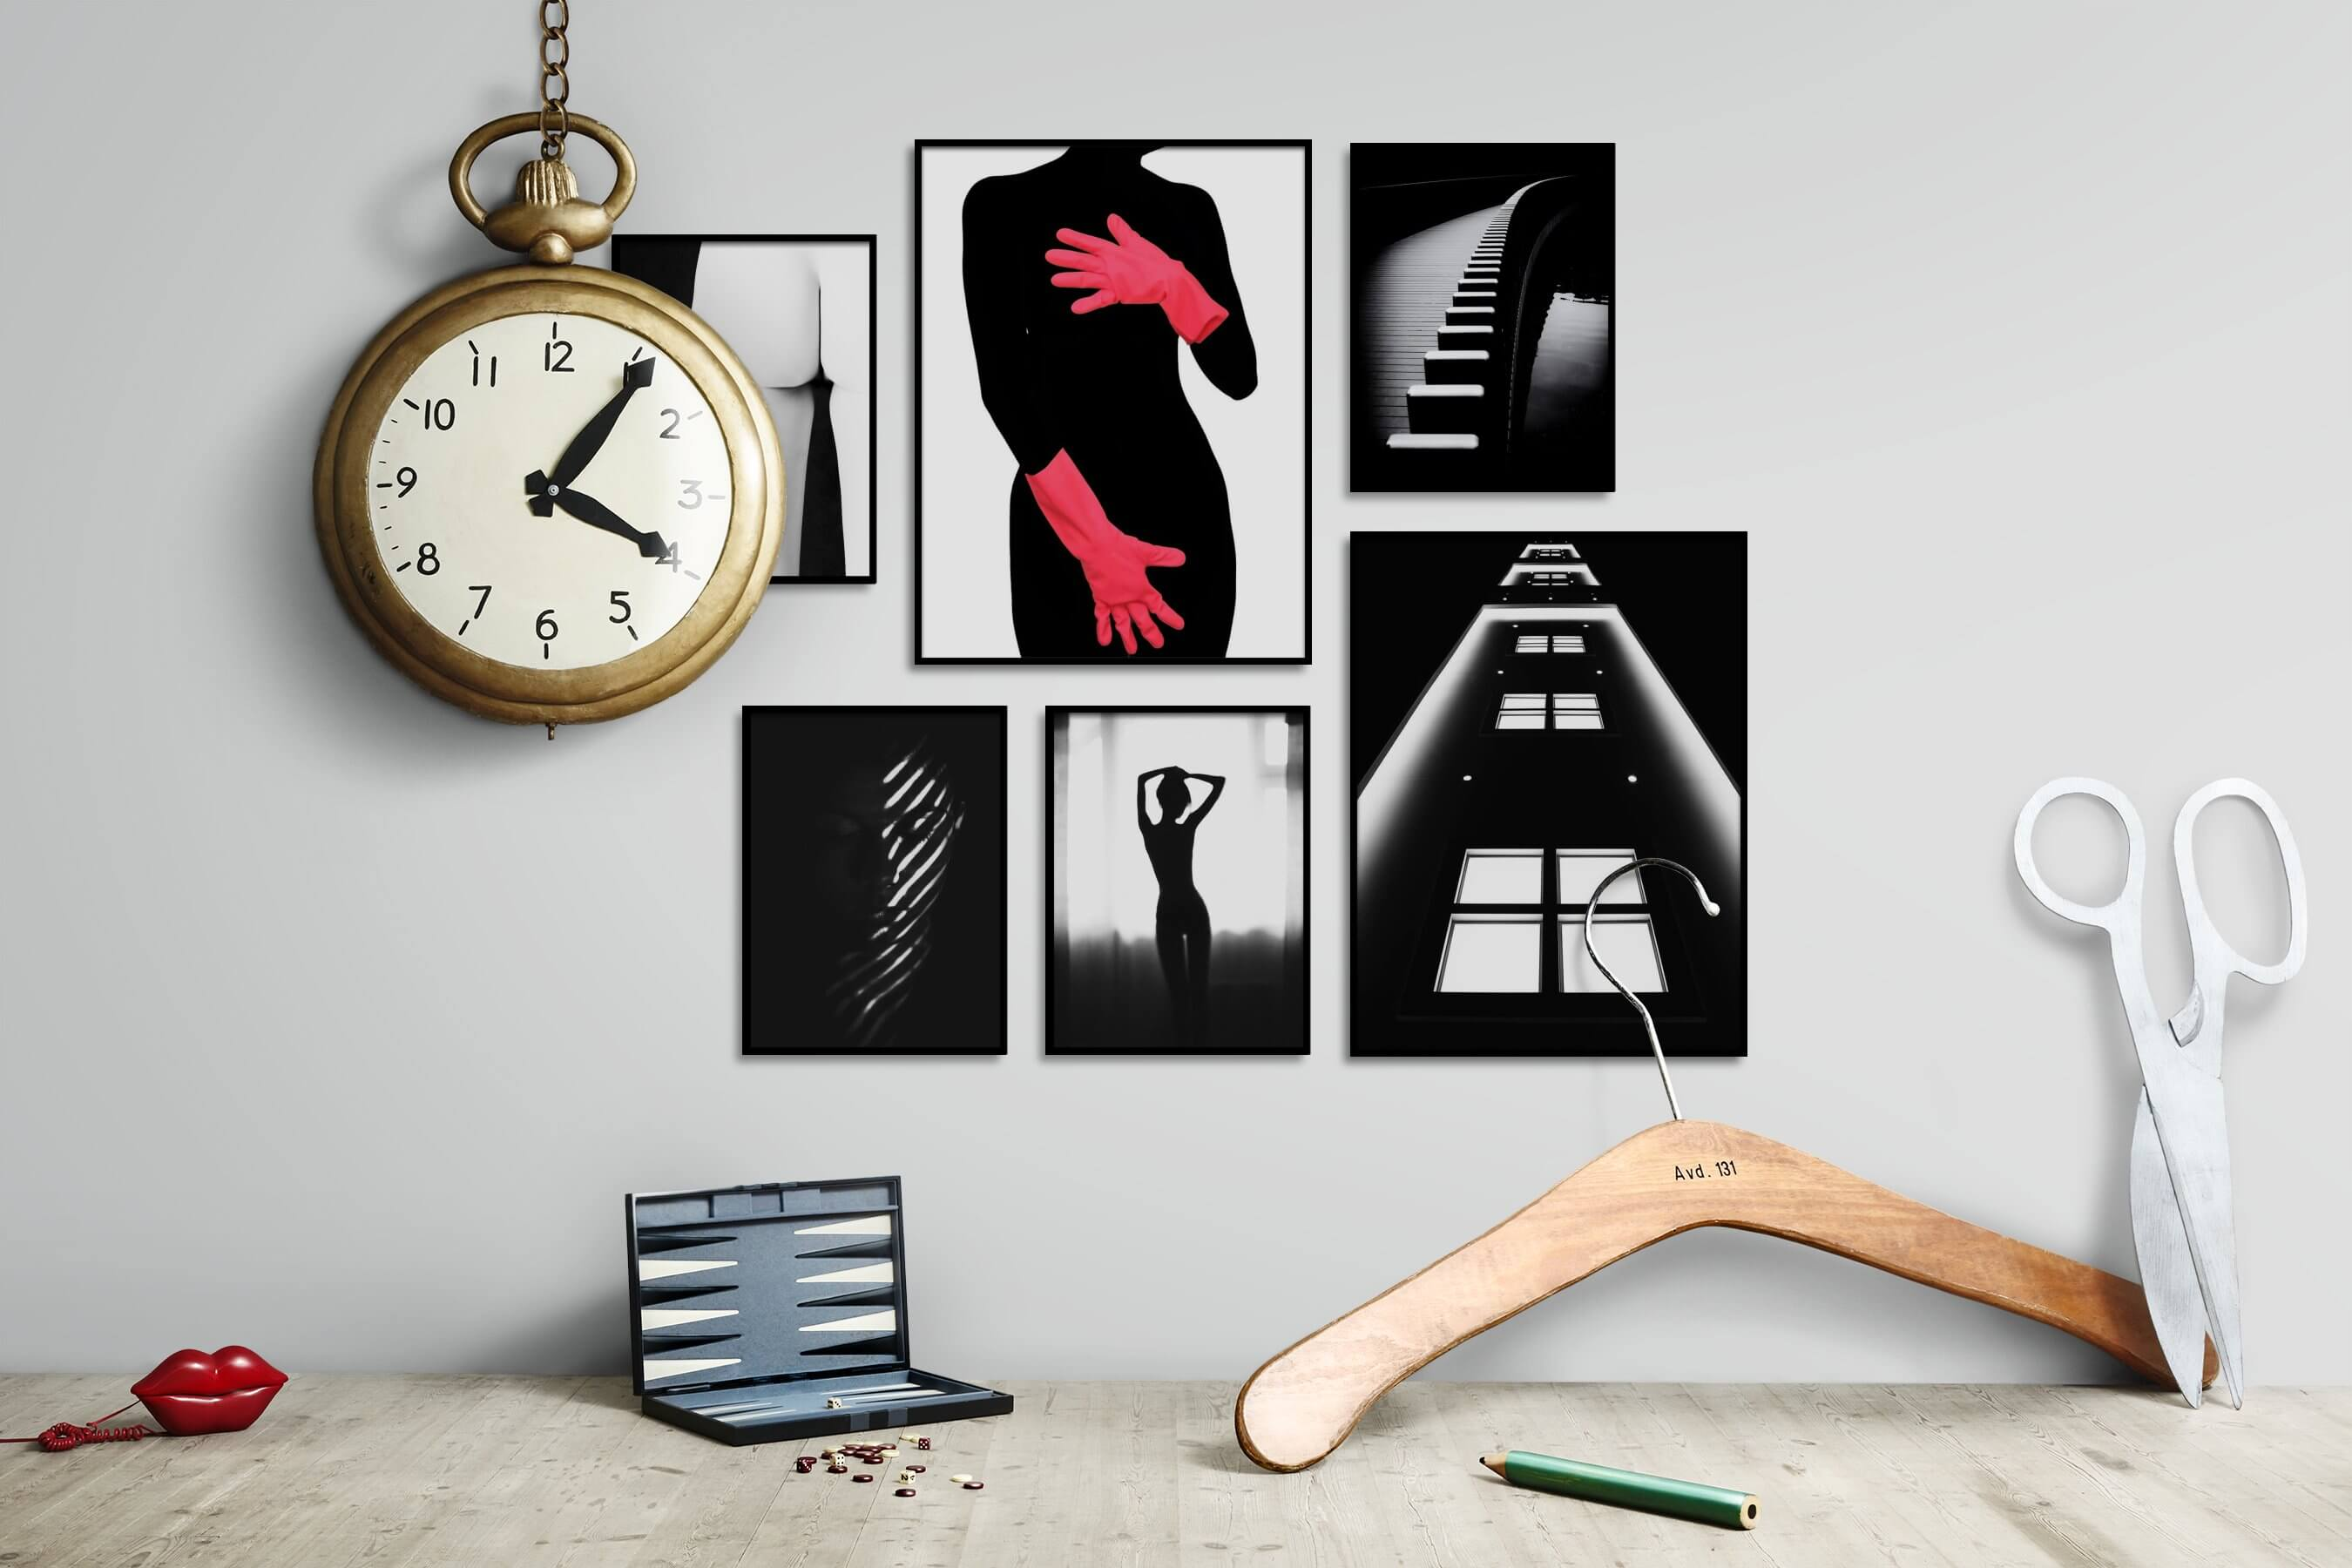 Gallery wall idea with six framed pictures arranged on a wall depicting Fashion & Beauty, Black & White, For the Minimalist, Artsy, Dark Tones, For the Moderate, and City Life